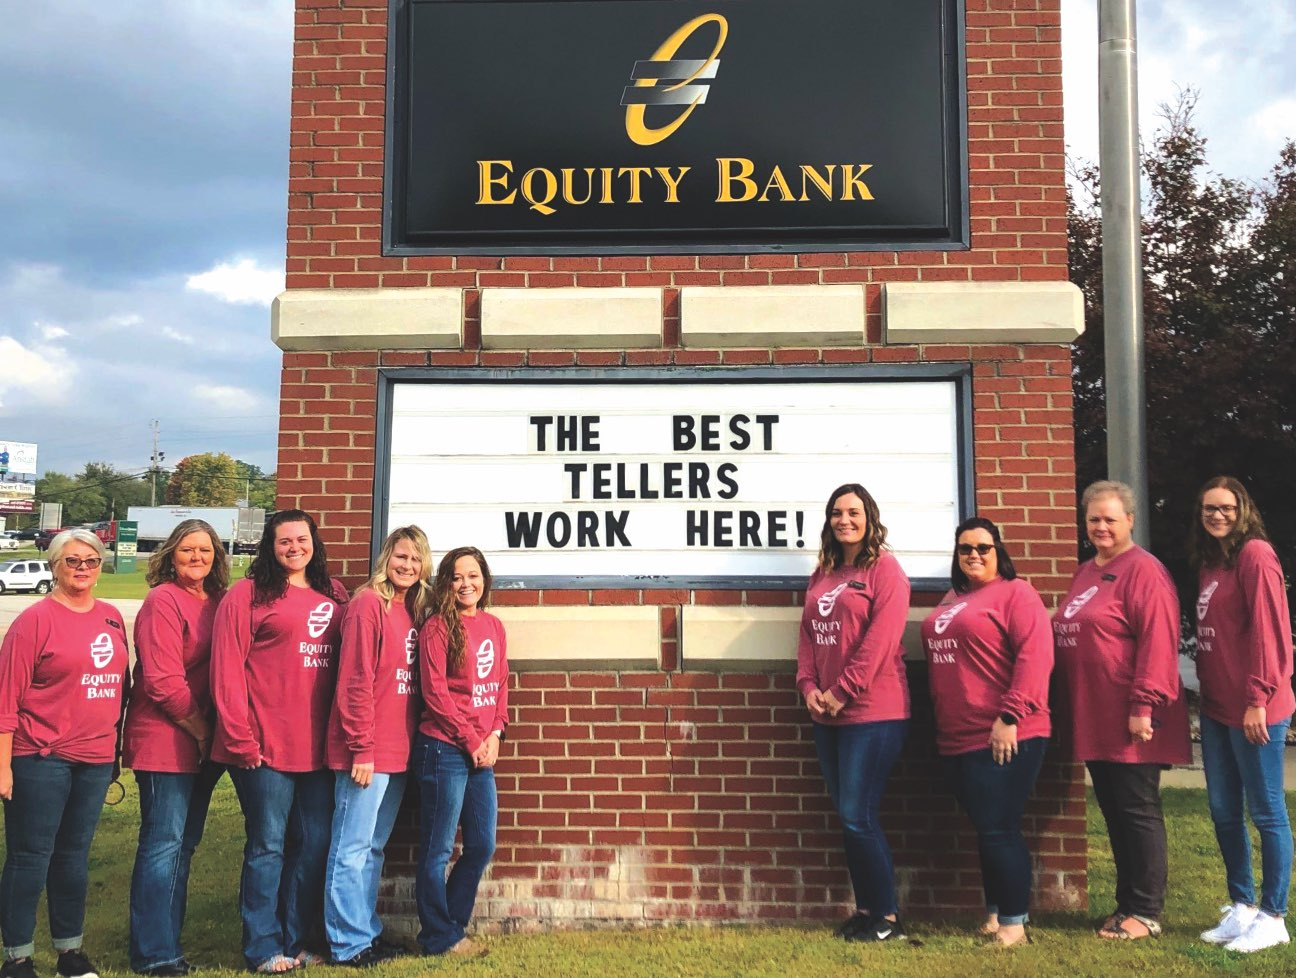 A group of Equity Bank employees flanking an exterior bank sign.